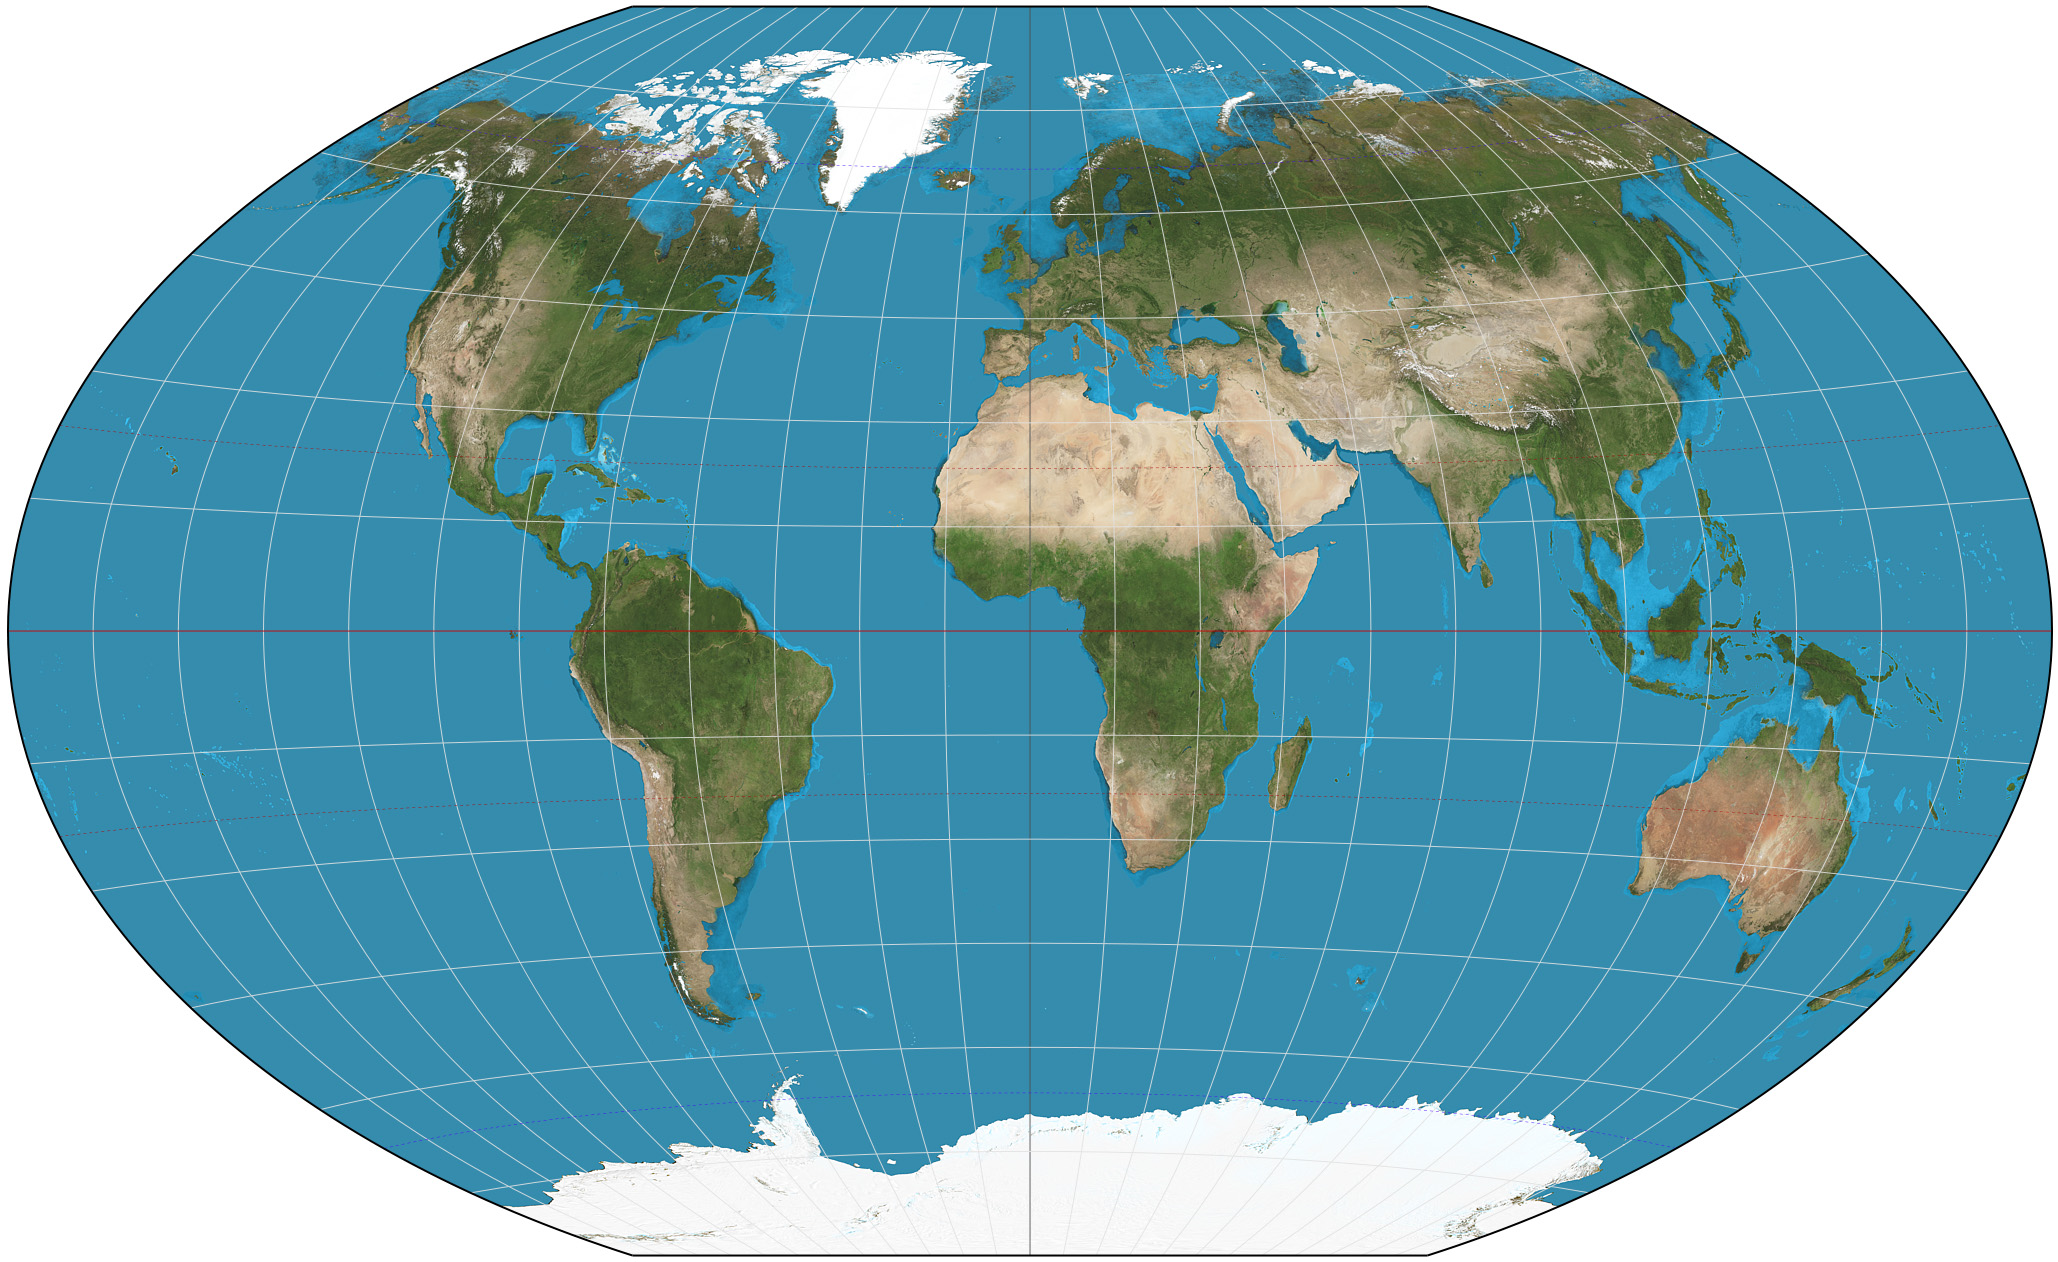 World map wikipedia a world map on the winkel tripel projection a low error map projection adopted by the national geographic society for reference maps gumiabroncs Images